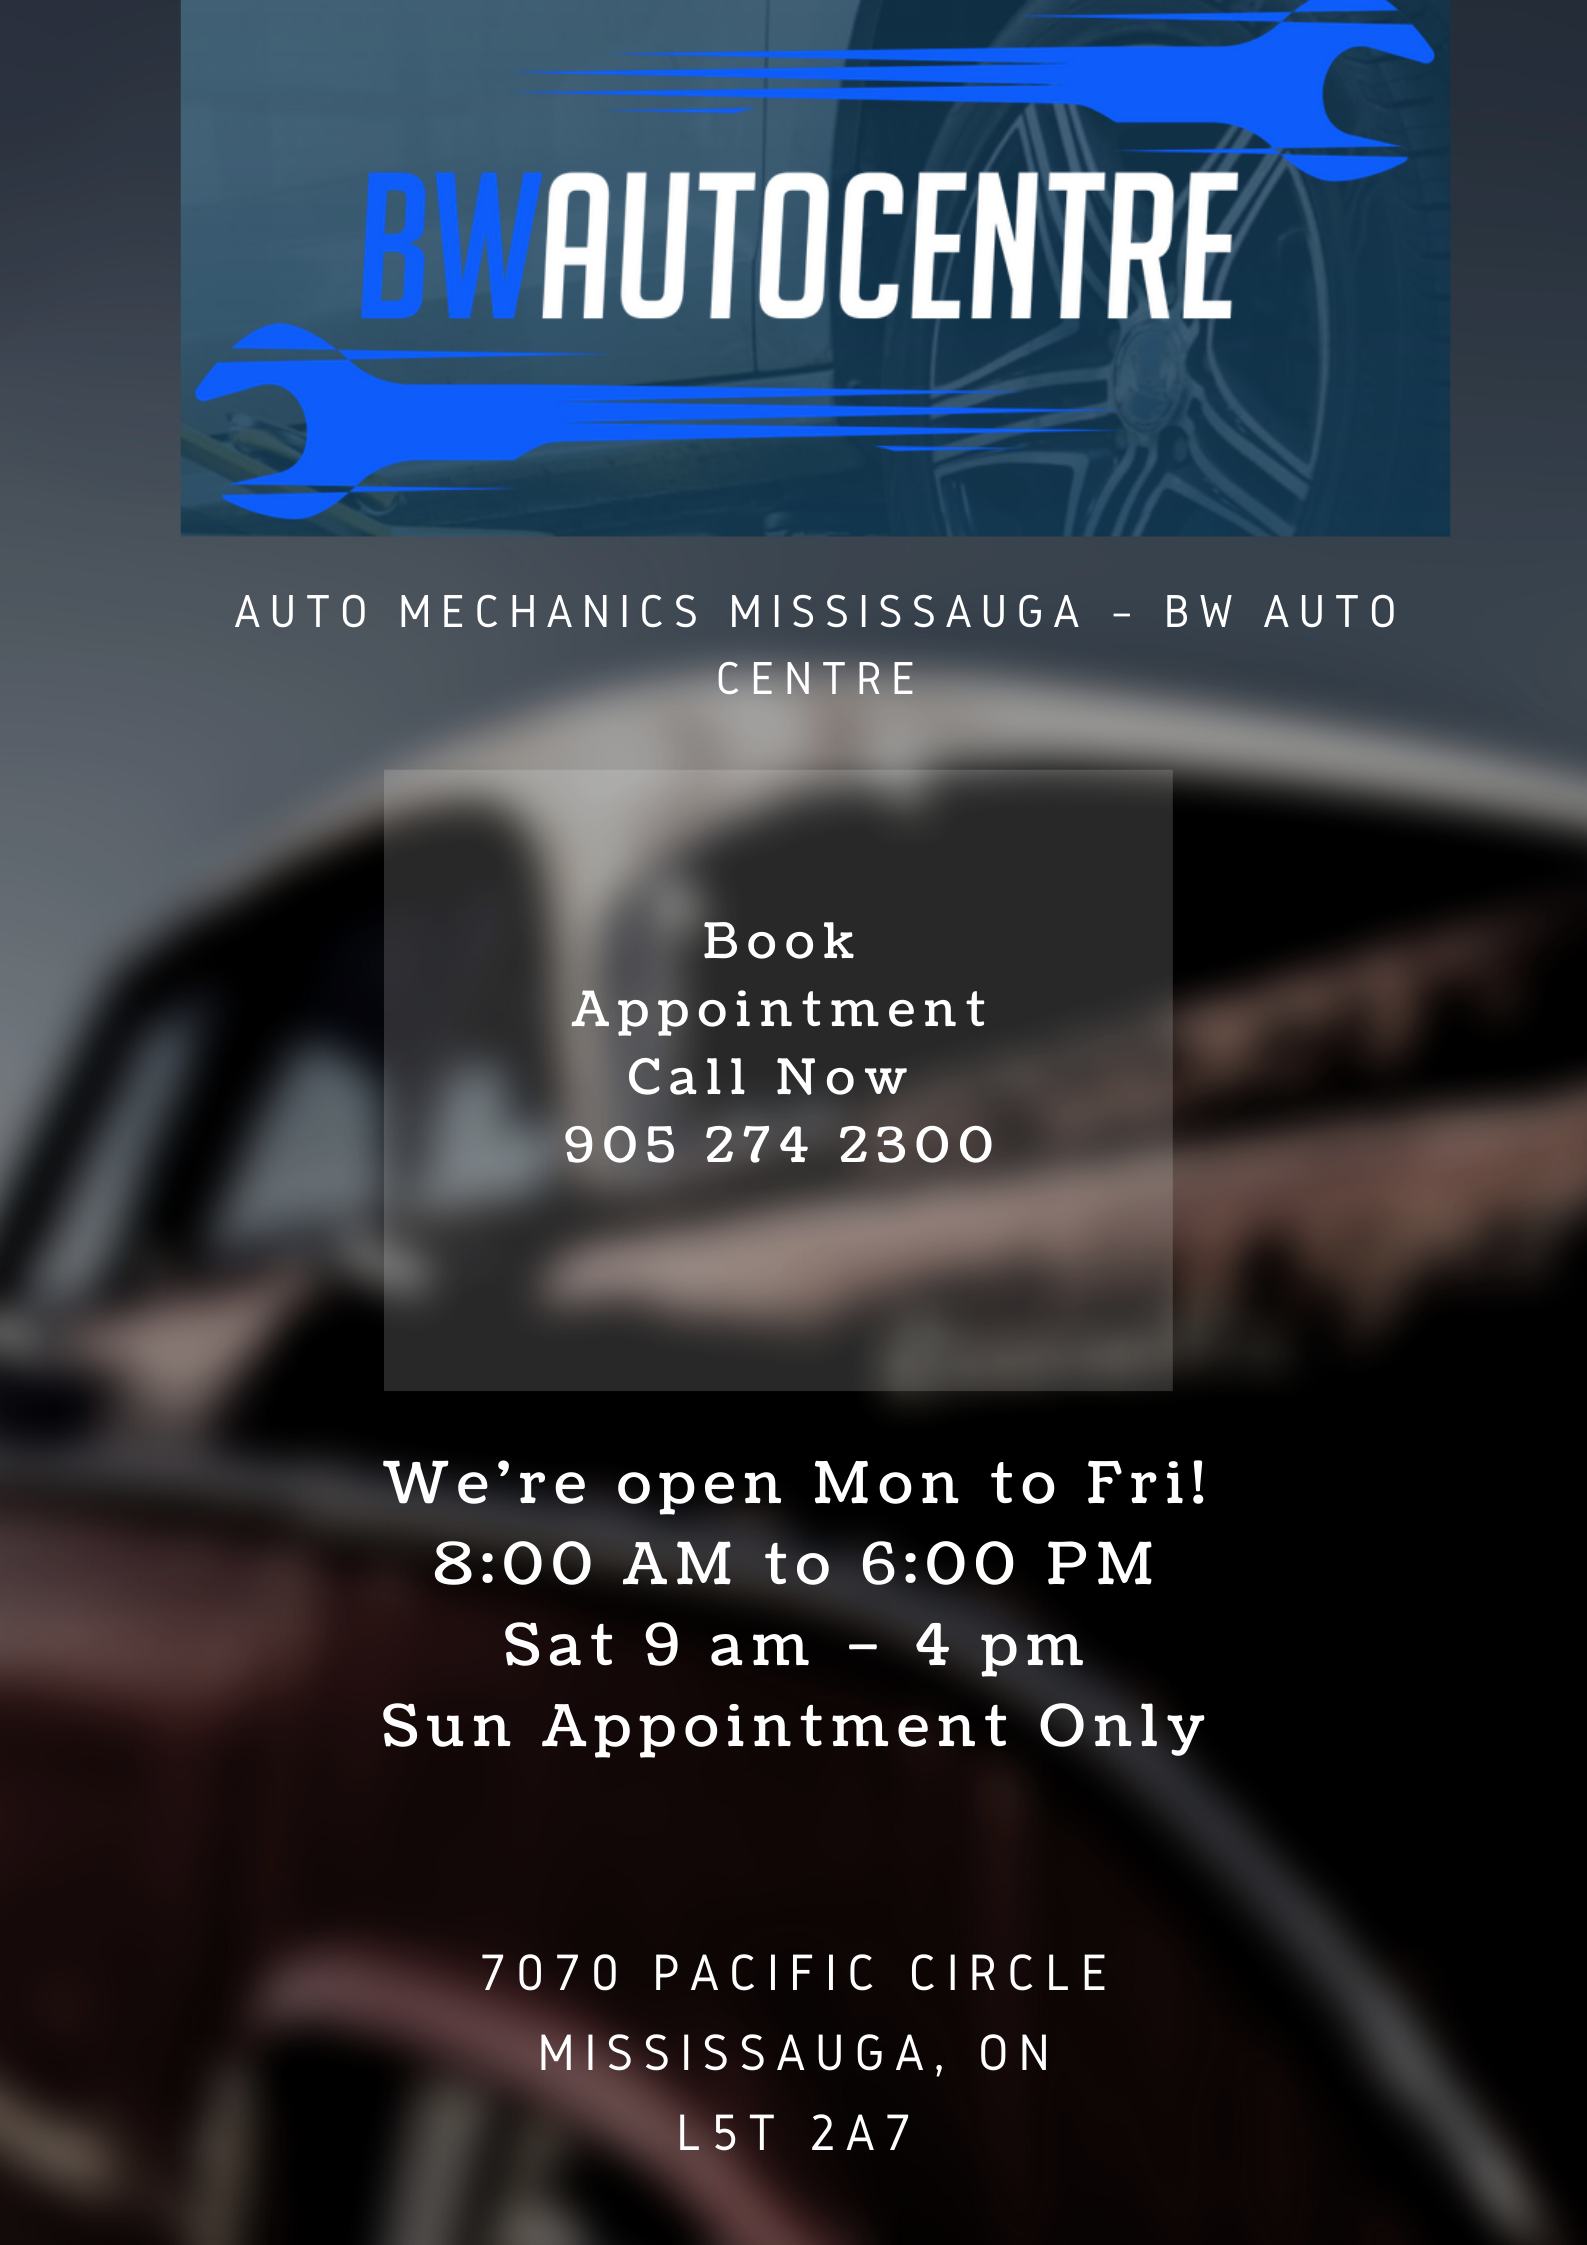 Car Repair Service Mississauga Book Appointment in 2020